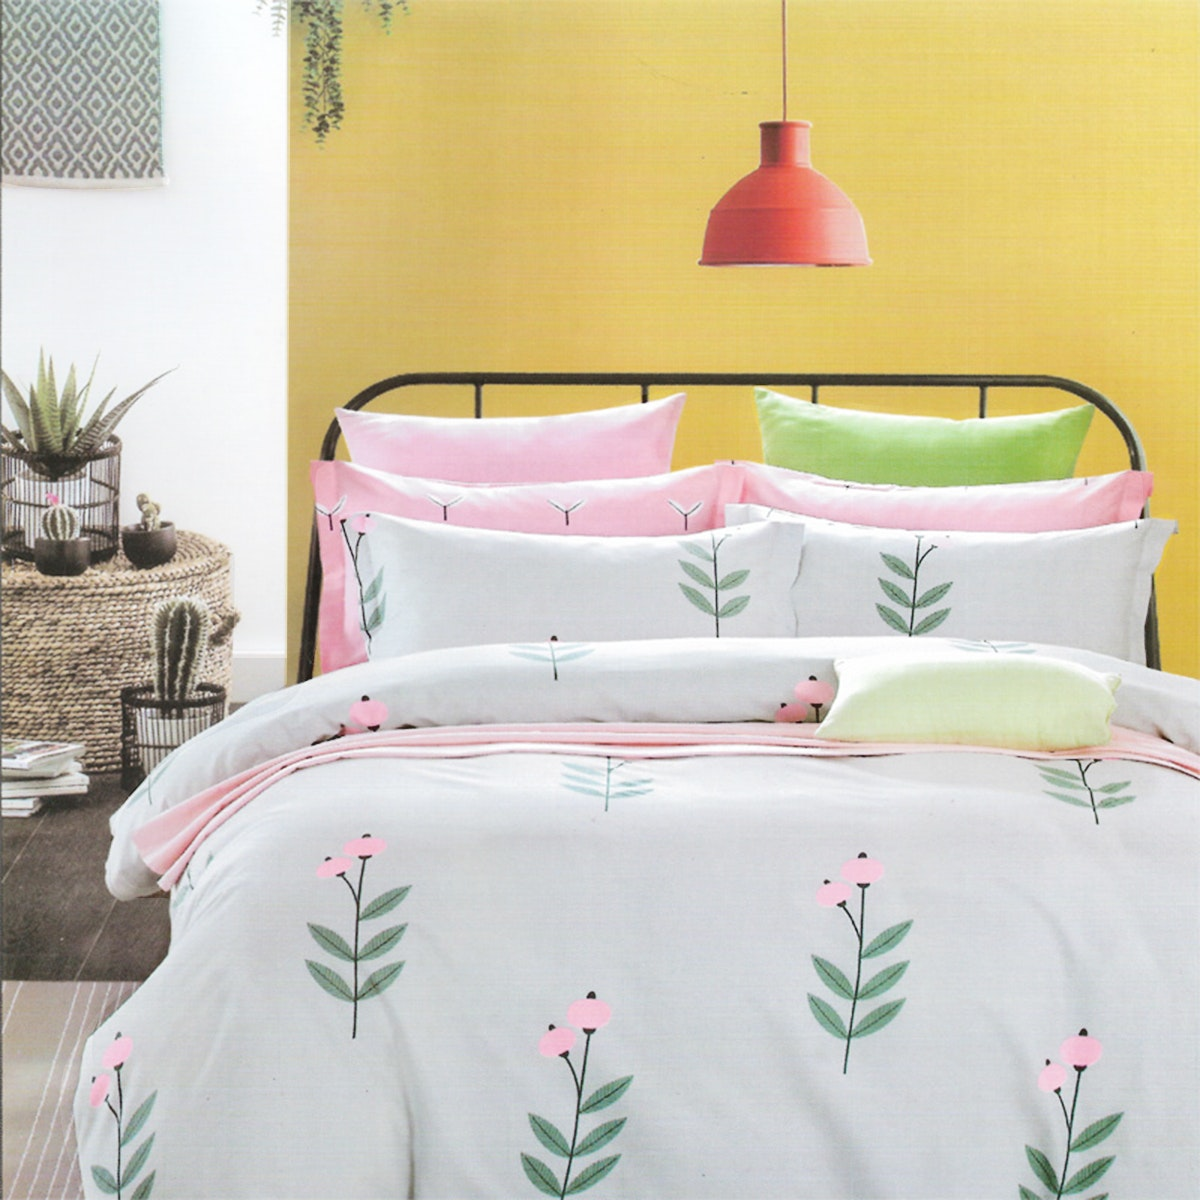 Sleep Buddy Set Sprei dan bed cover Sweet Pie Pigmen Katun 160x200x30